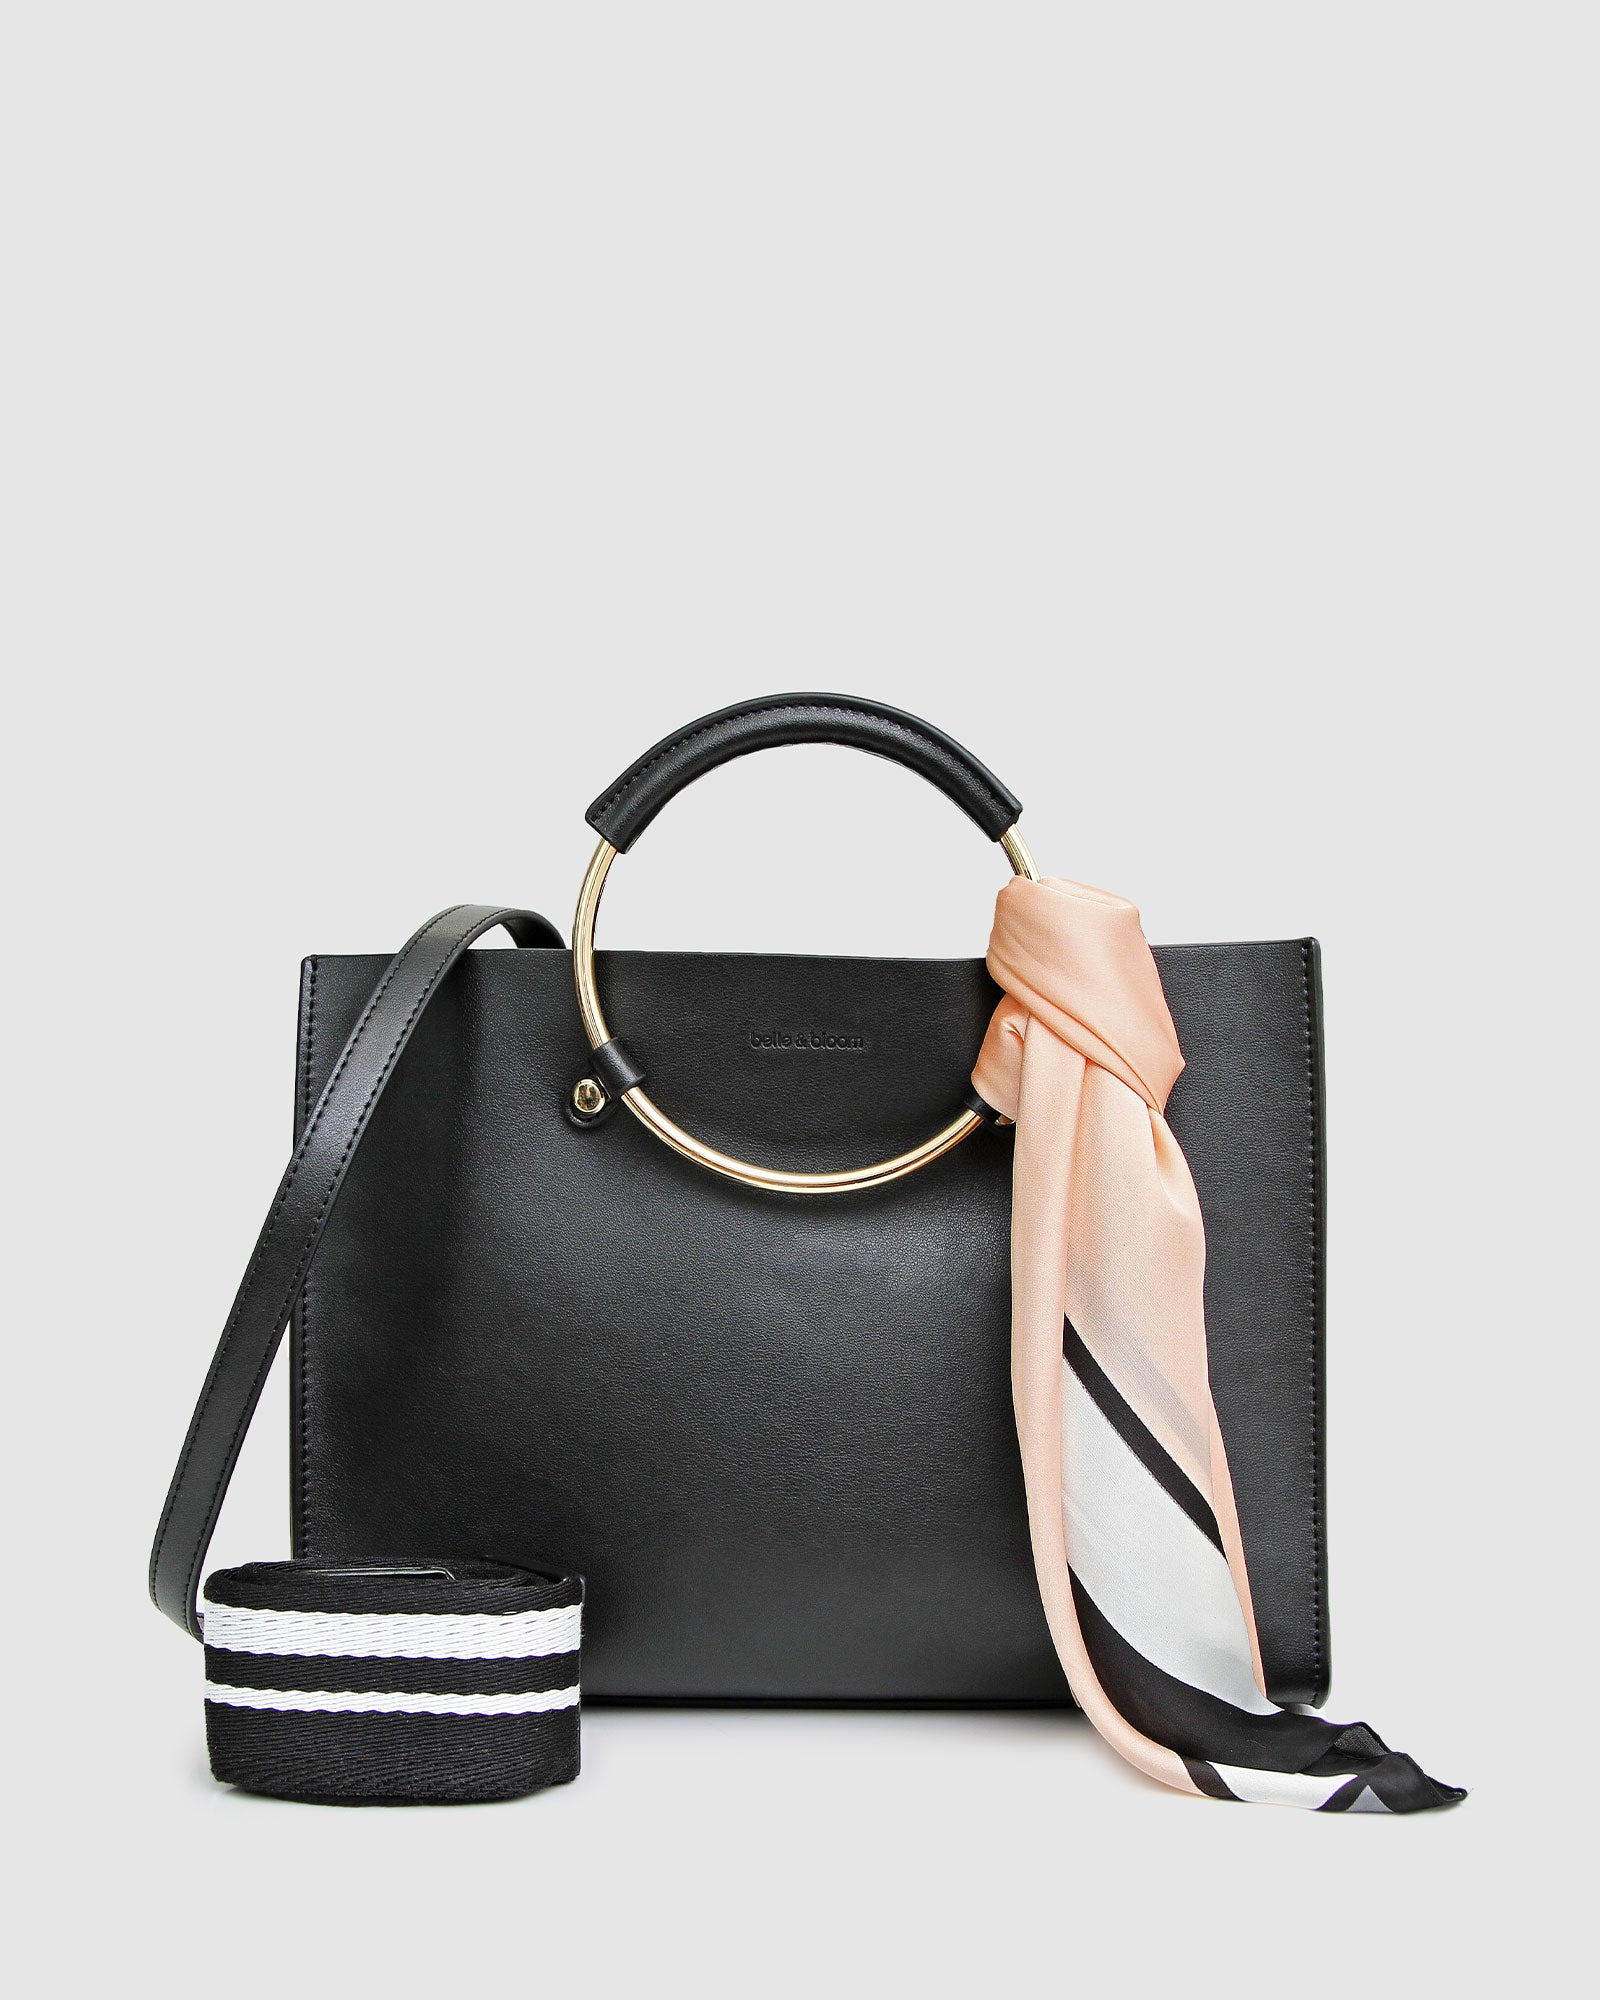 PALNEWBLK---leather-bag-satchel-golden-ring-straps-front.jpg